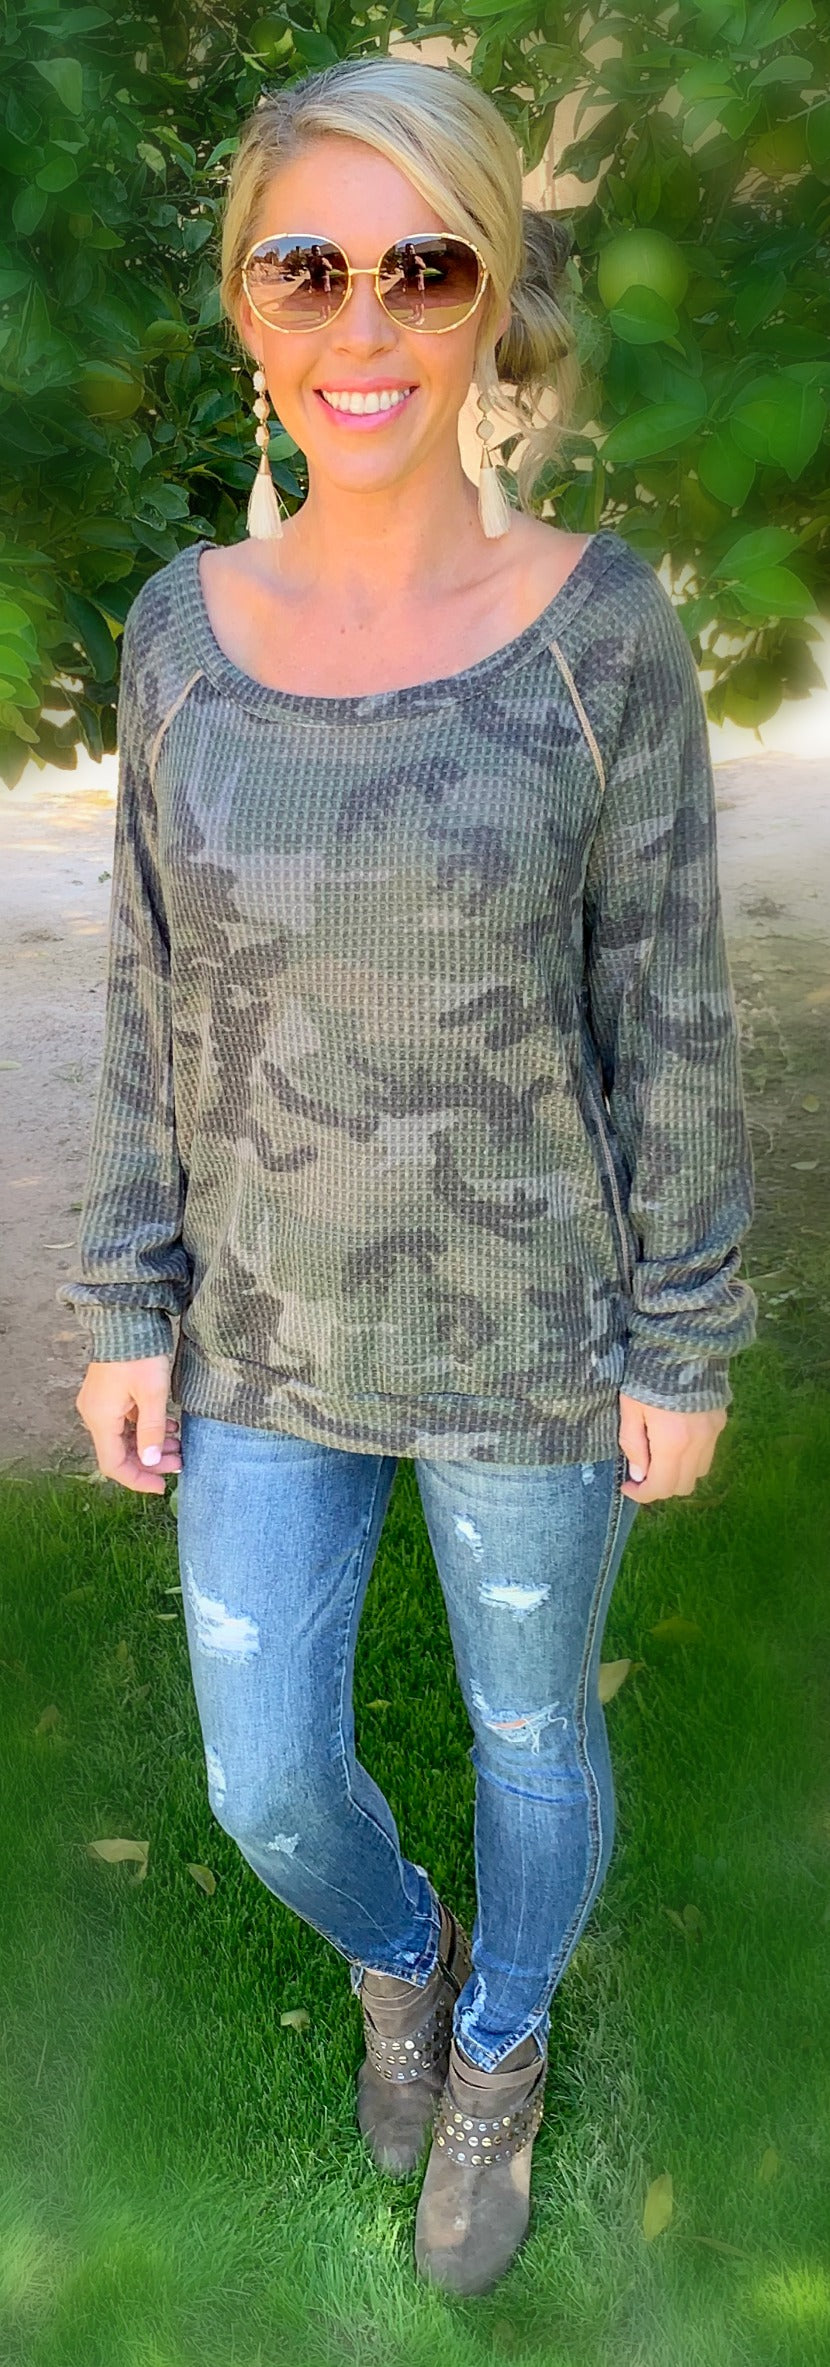 When Your With Me Camo Top